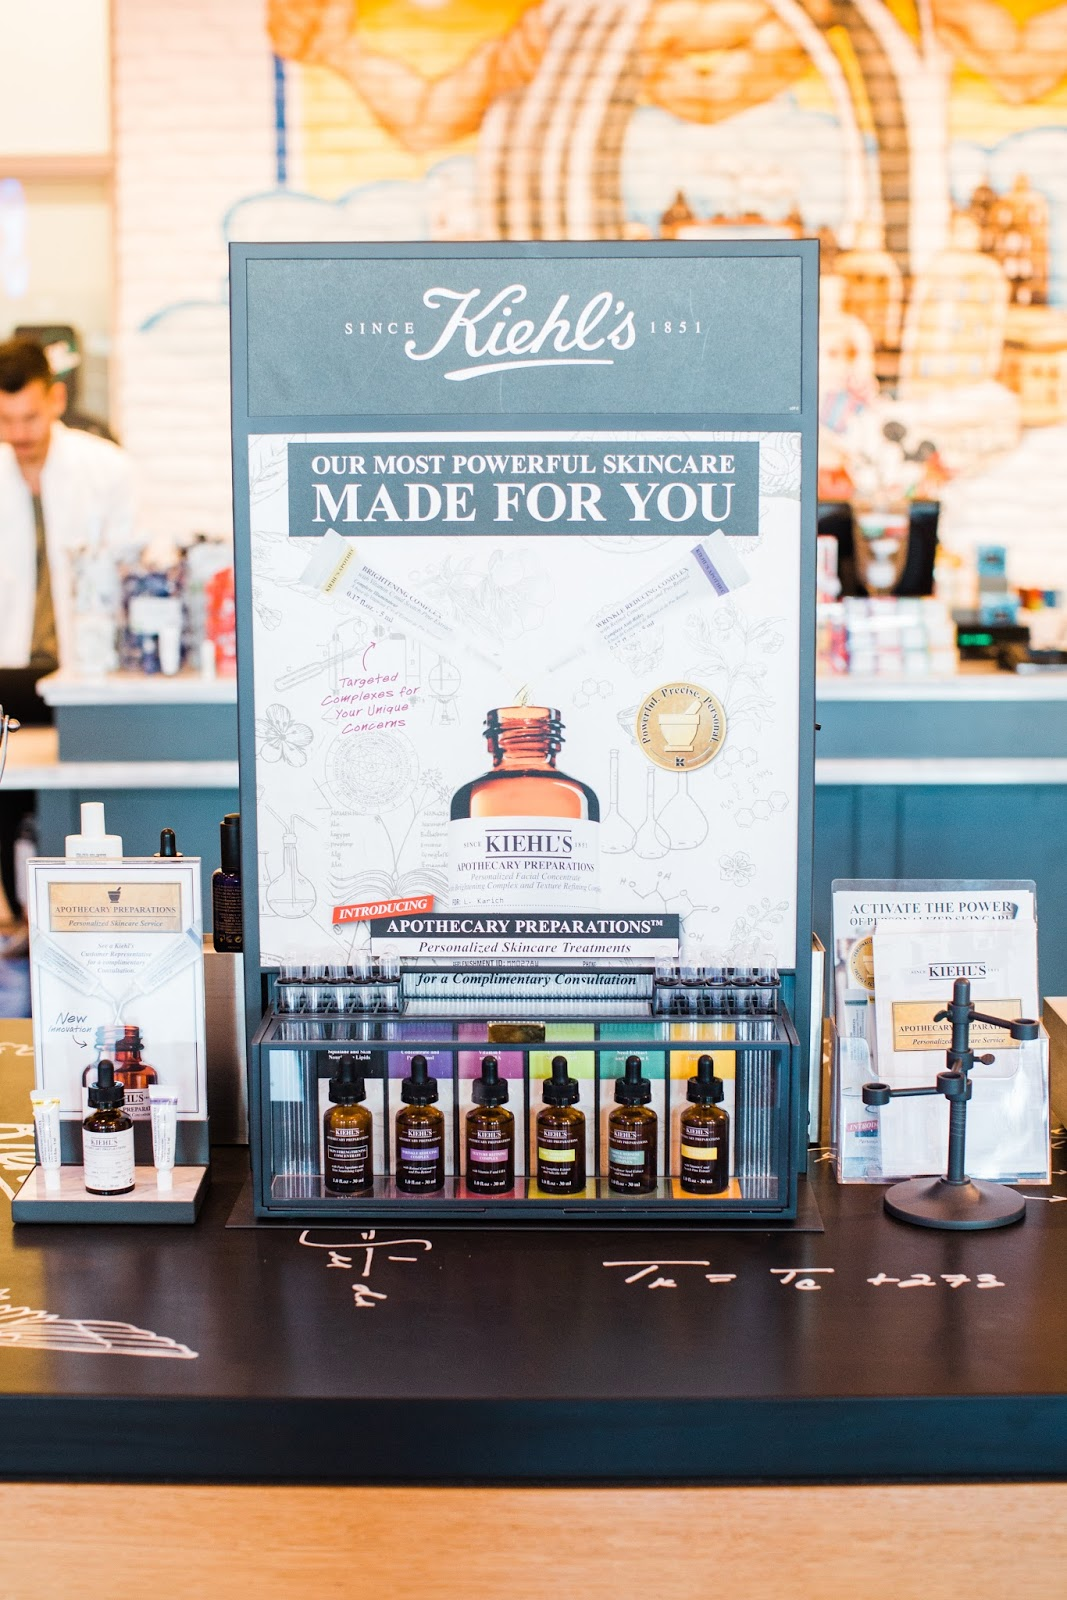 Apothecary Preparations: Kiehl's New Personalized Skincare Service